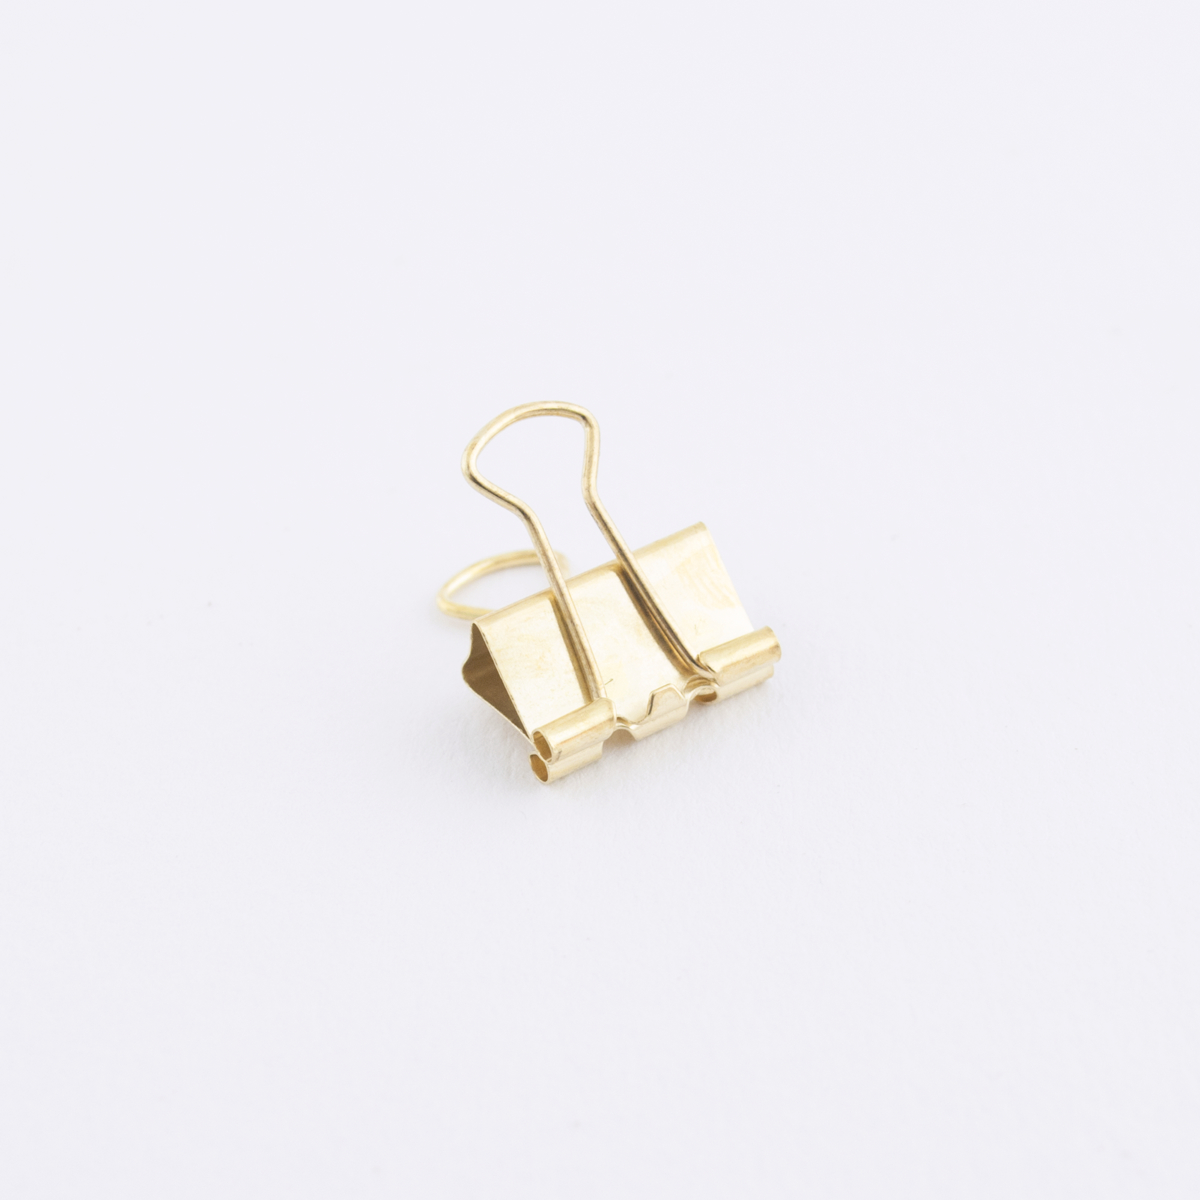 small gold binder clip